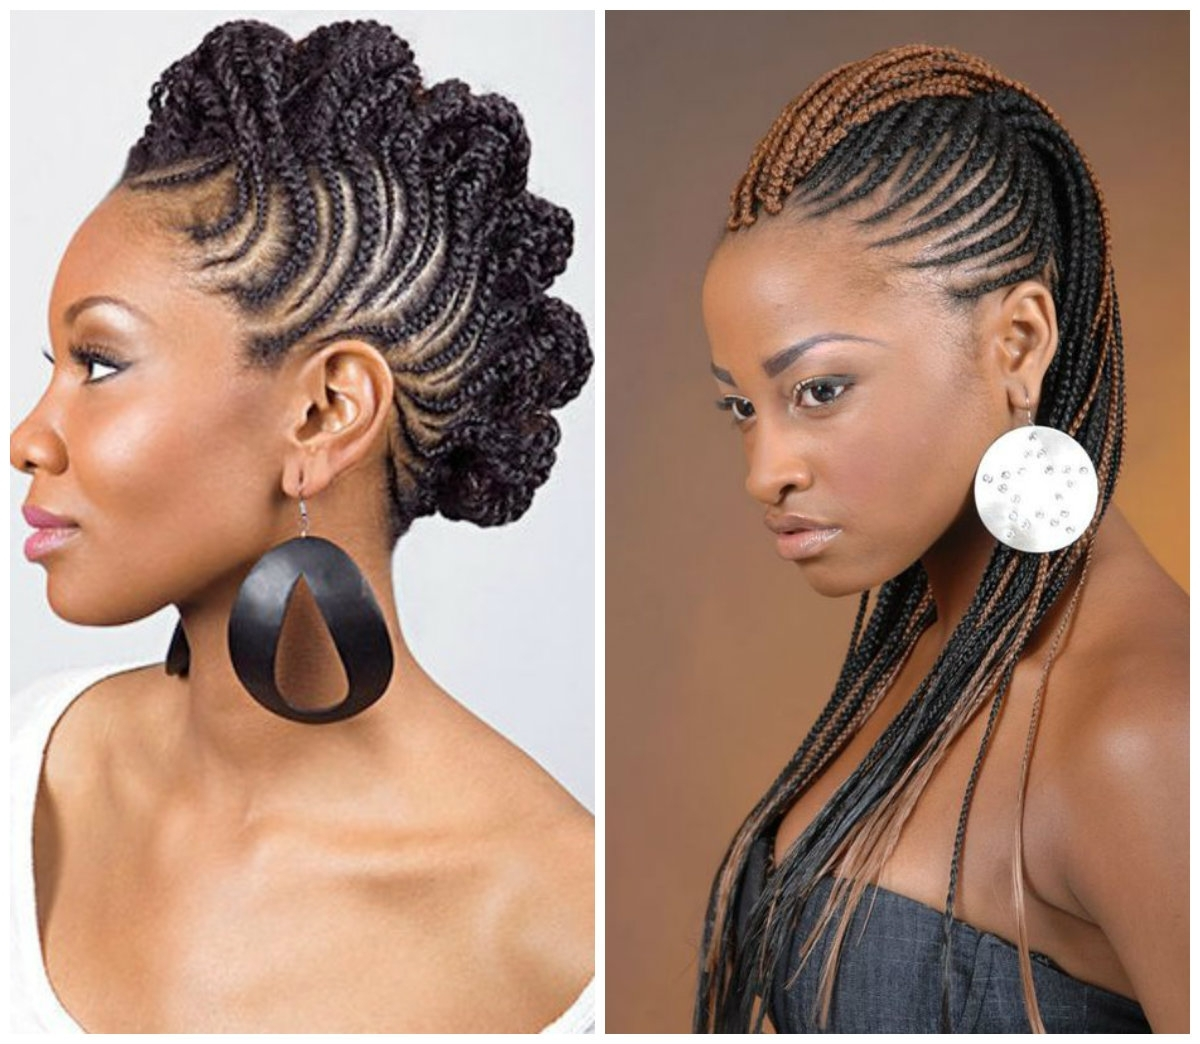 Hot African American Stone Age Inspired Braided Hairstyle Ideas Inside Scalp Braids Updo Hairstyles (View 15 of 15)